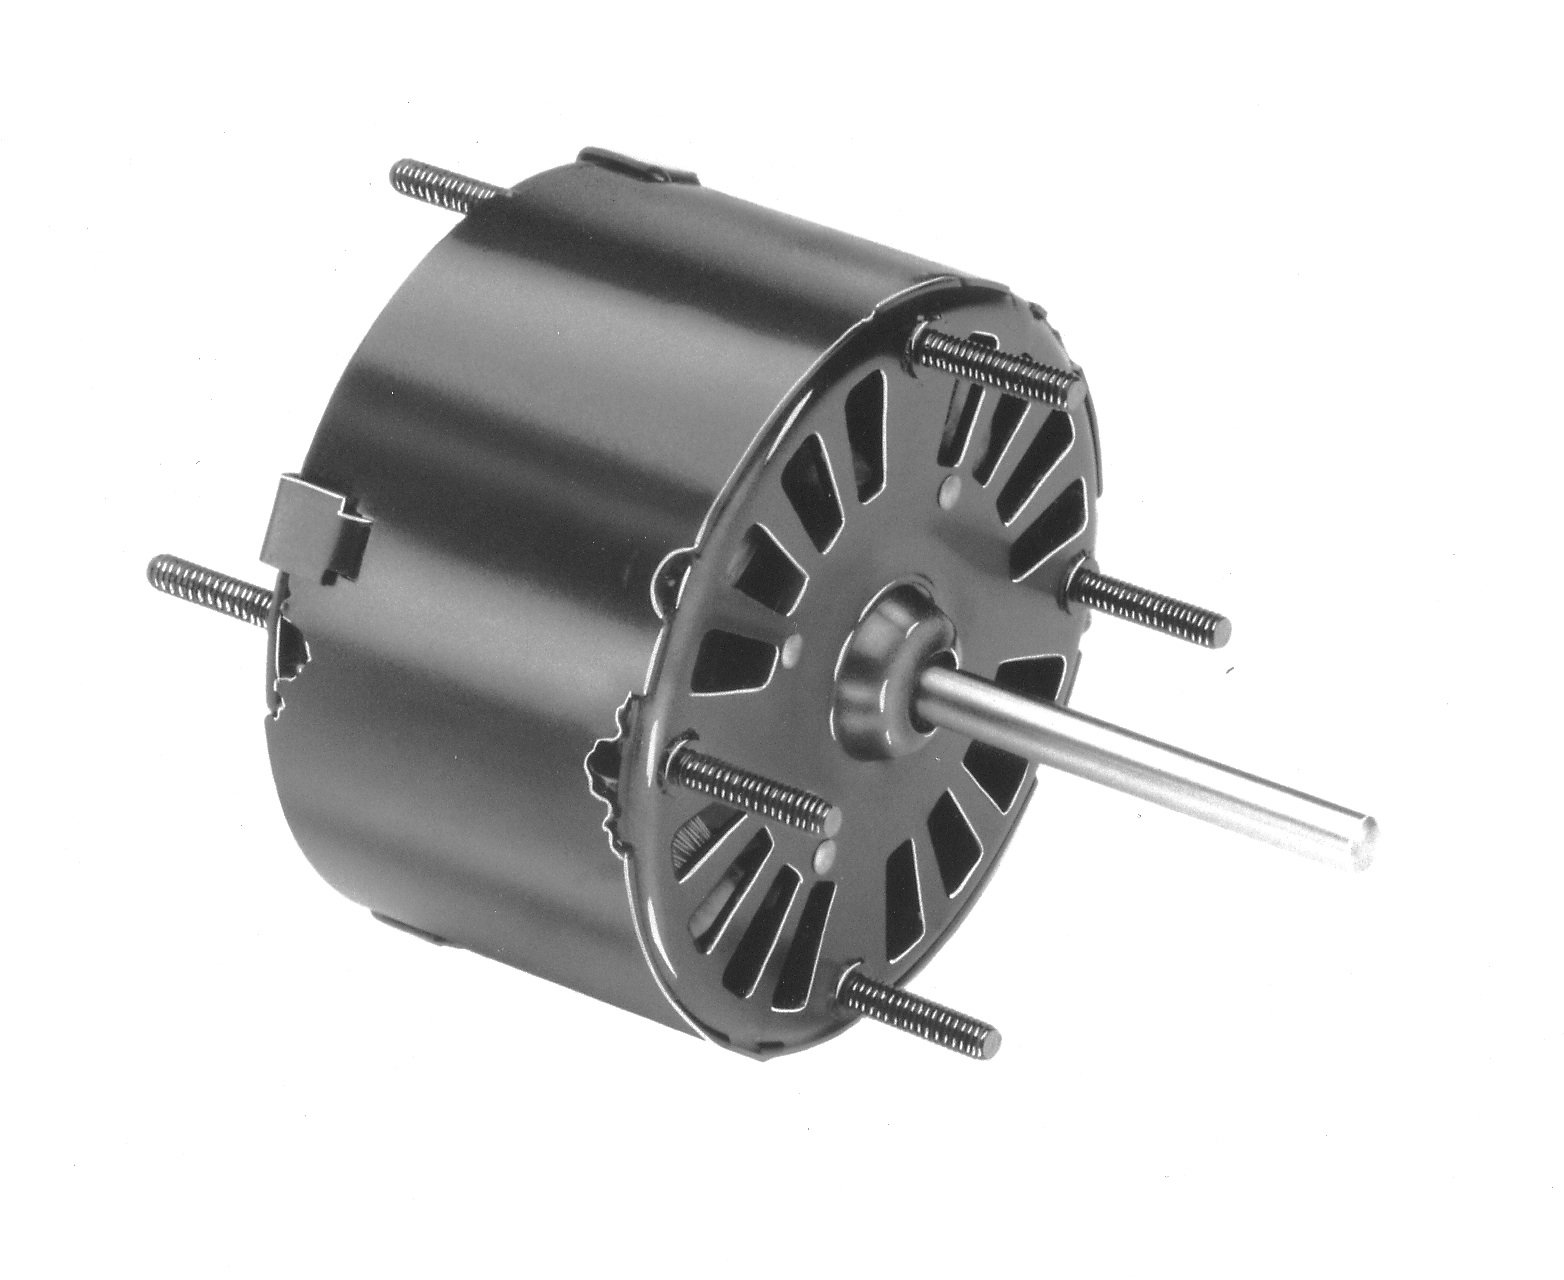 Fasco D532 3.3'' Frame Open Ventilated Shaded Pole General Purpose Motor withSleeve Bearing, 1/30-1/112HP, 1500rpm, 115V, 60Hz, 1.4-0.8 amps by Fasco